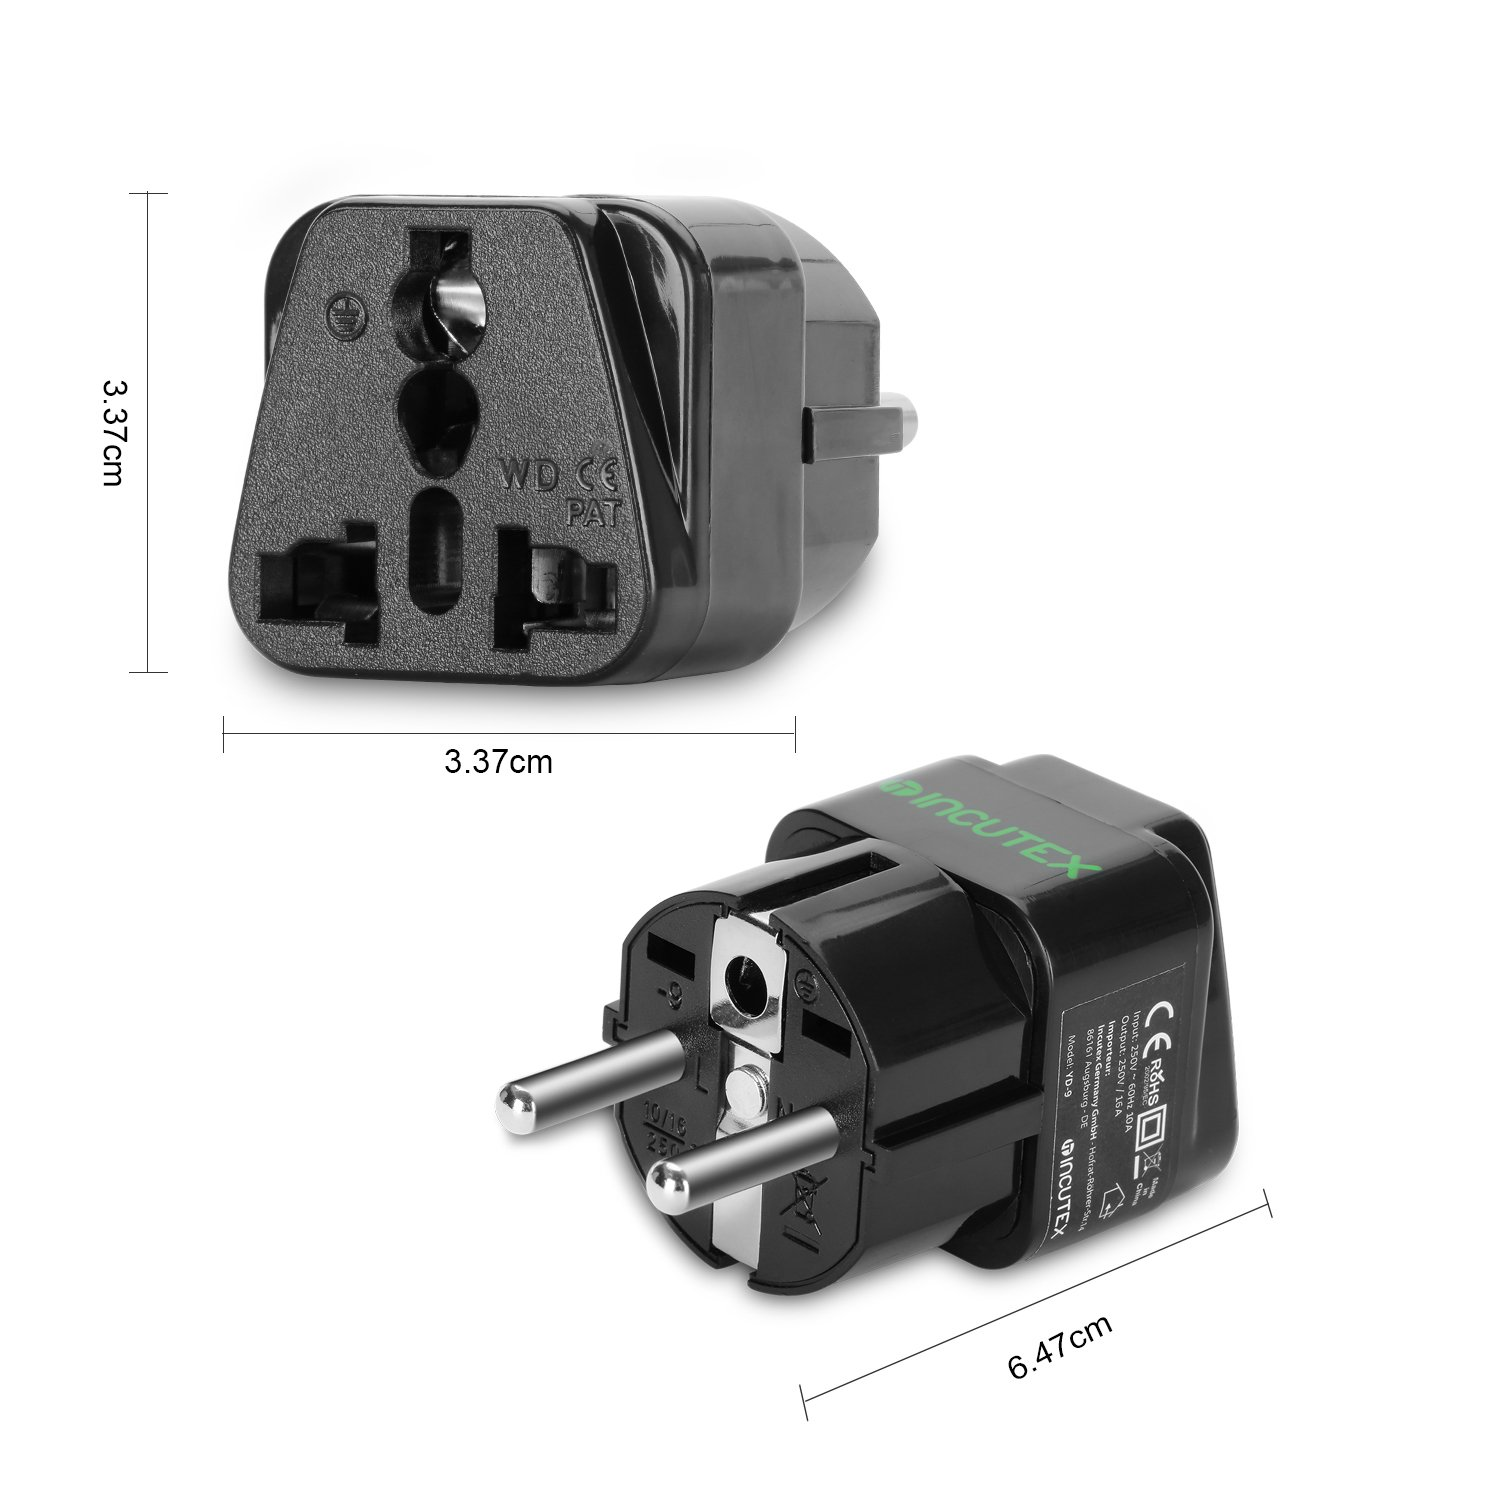 Incutex 3x Reisestecker UK GB England Travel Adapter EU Schuko 2-Pin auf UK 3-Pin Reise Steckdosenadapter Weiß